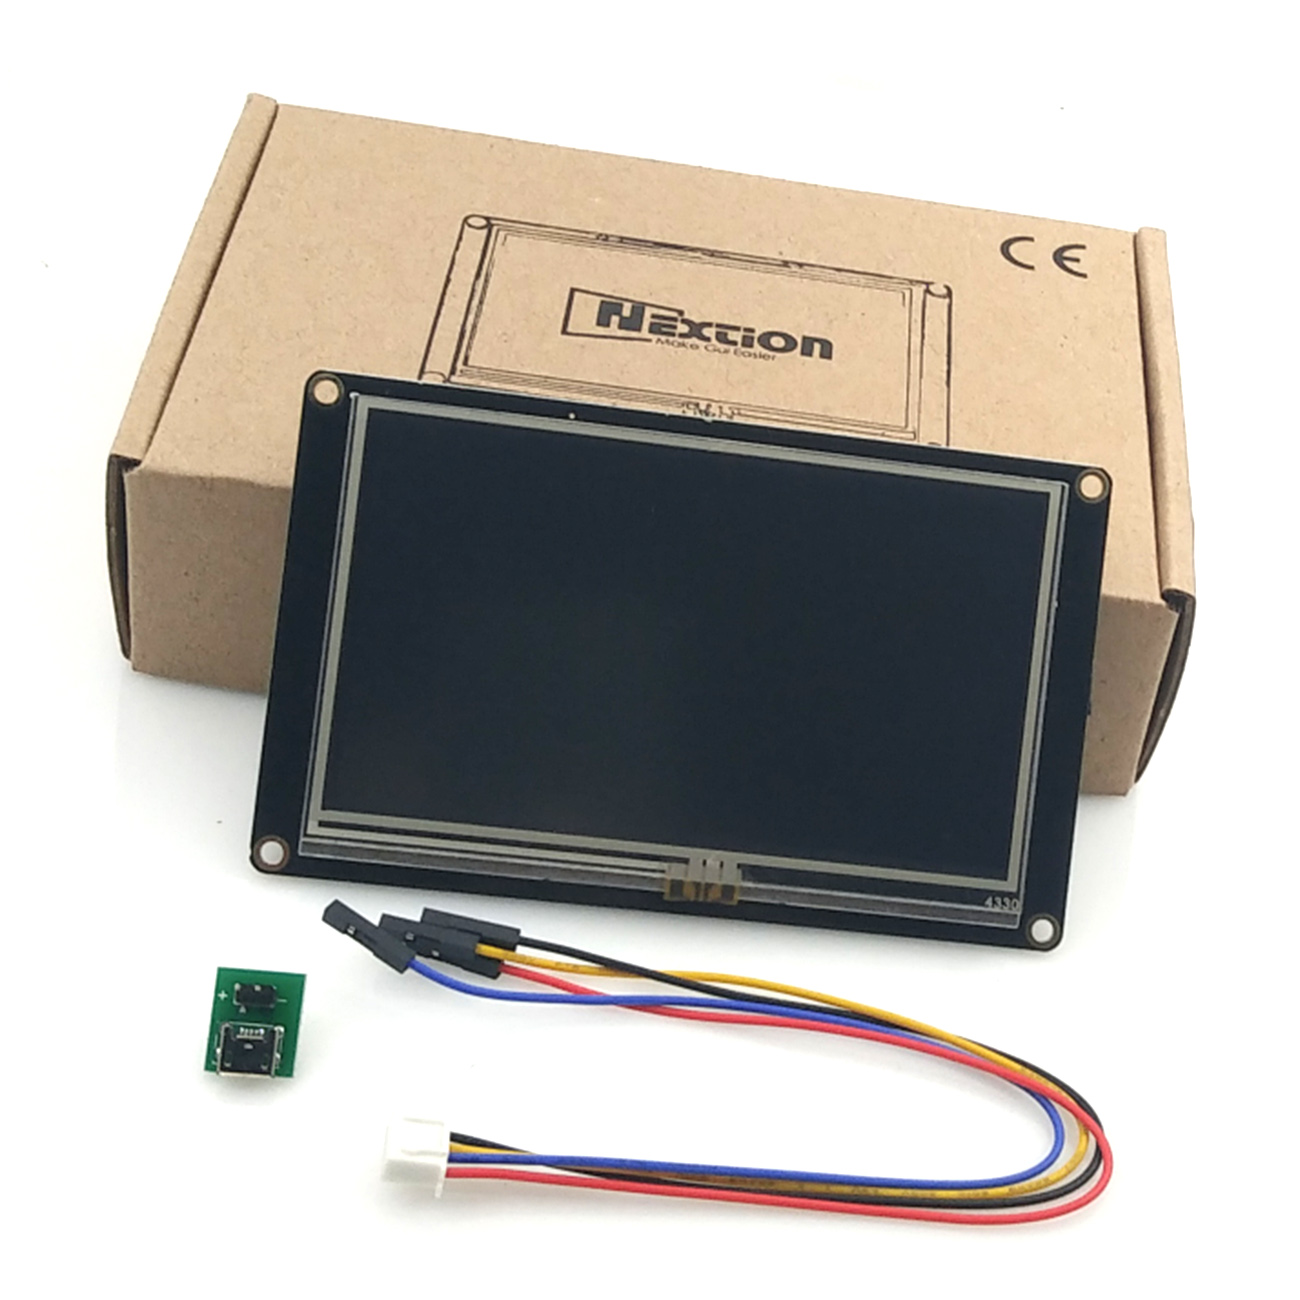 Nextion 4.3 Enhanced HMI Intelligent Smart USART UART Serial Touch TFT LCD Module Display Panel For Raspberry Pi Kits-in LCD Modules from Electronic Components & Supplies